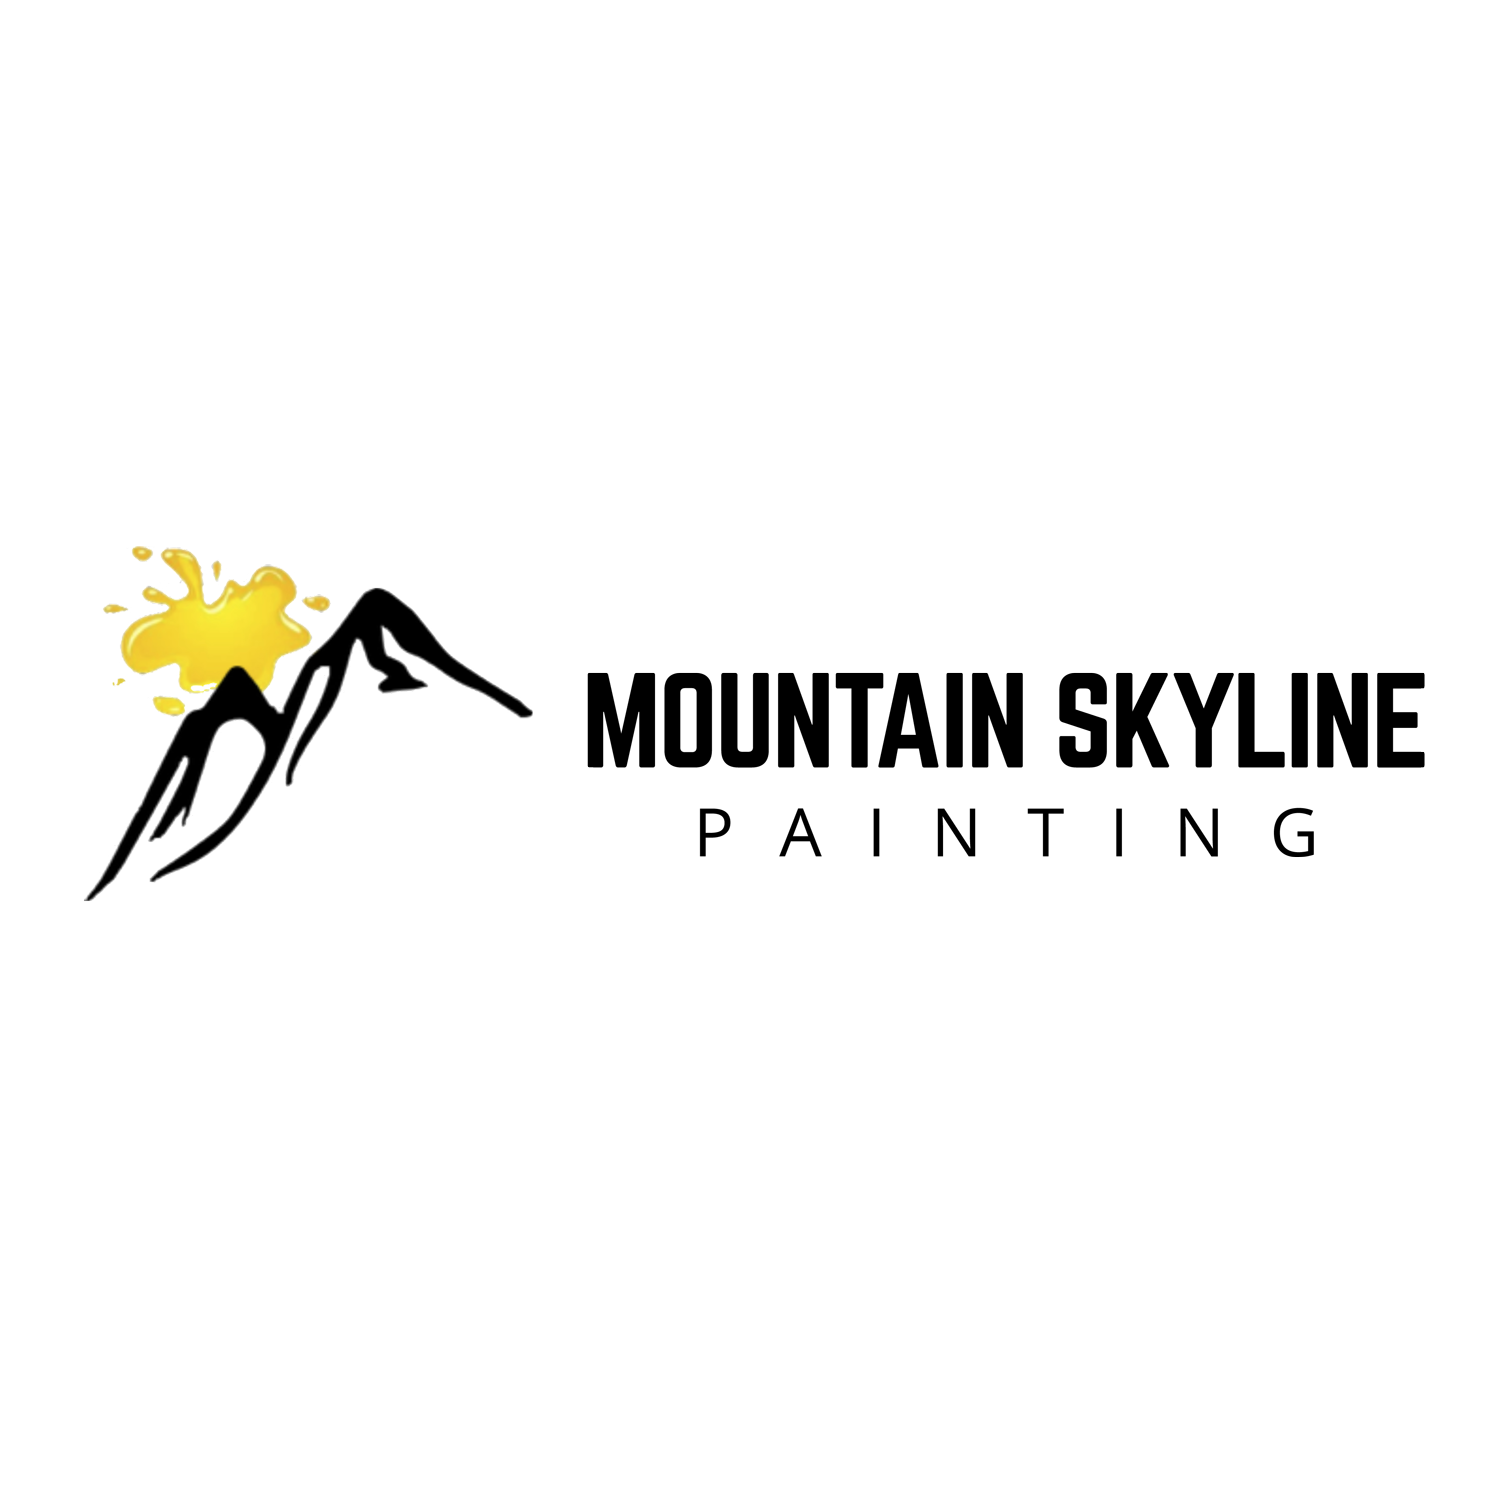 Mountain Skyline Painting